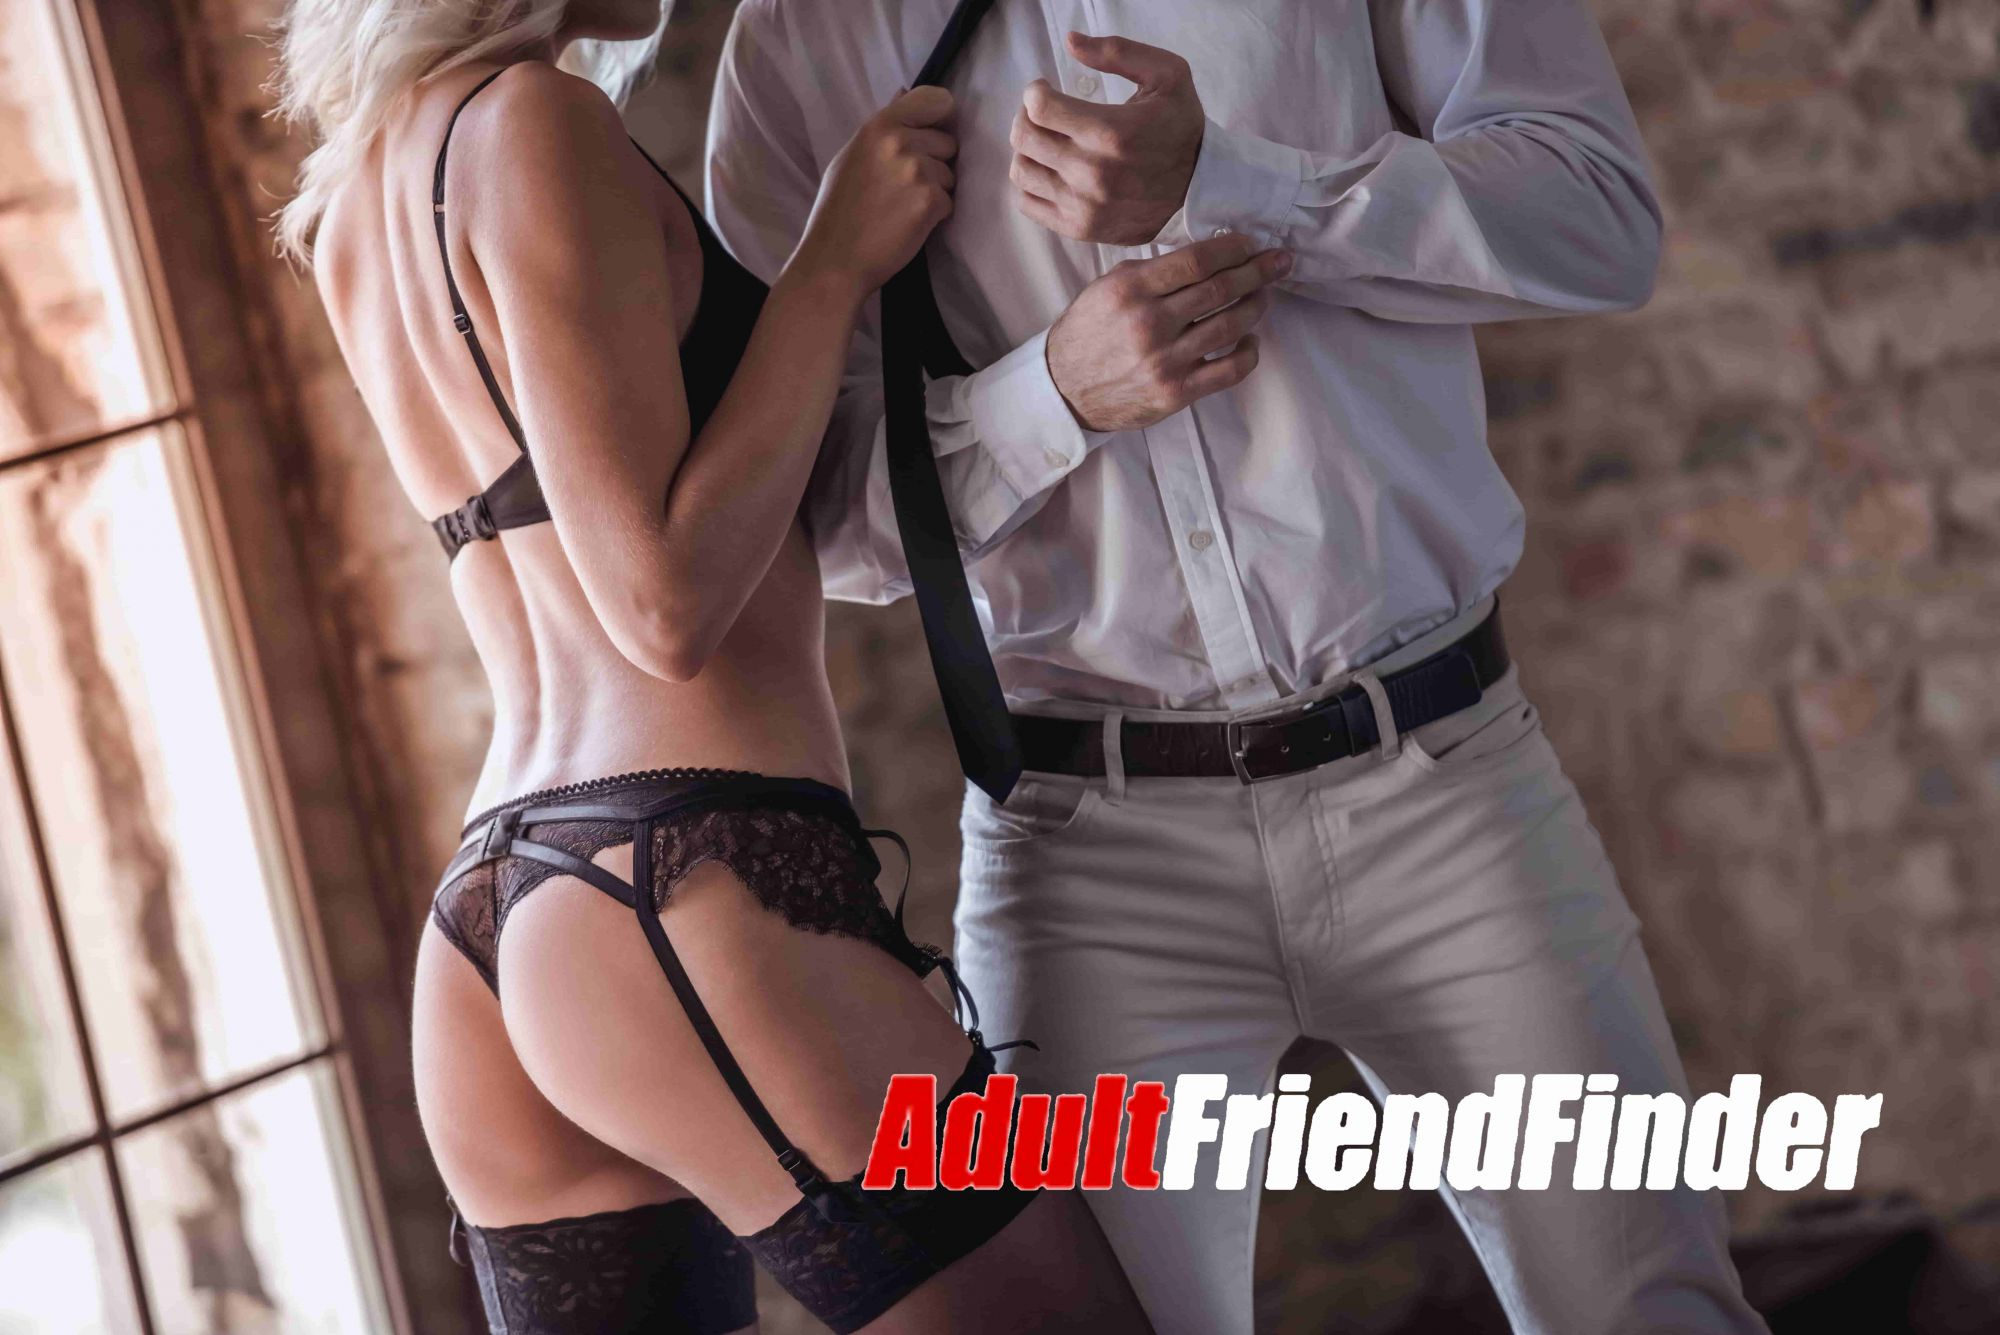 Adultfriendfinder Review